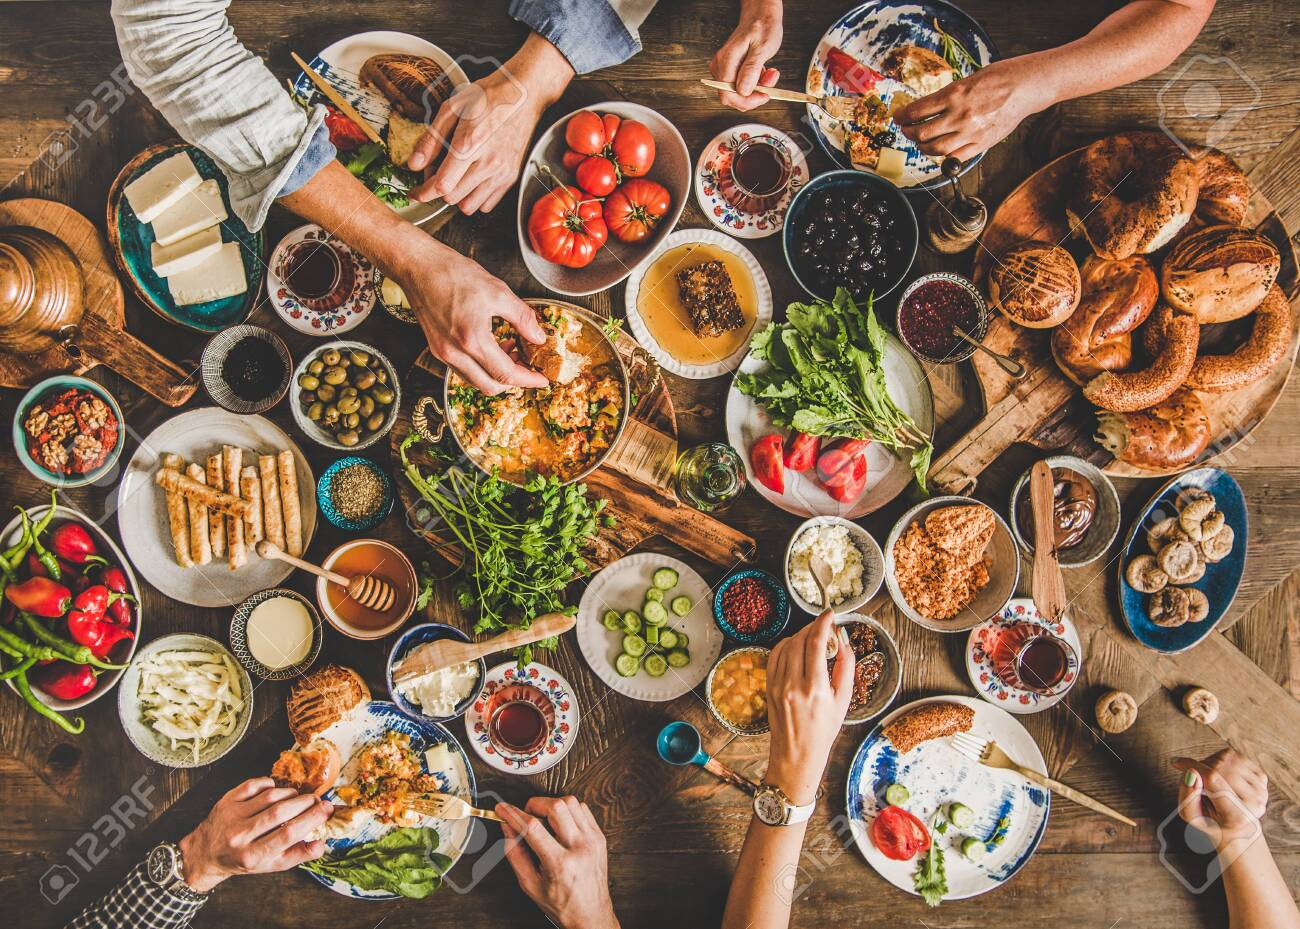 Turkish breakfast table. Flat-lay of peoples hands taking Turkish pastries, vegetables, greens, cheeses, fried eggs, jams and tea in copper pot and tulip glasses over wooden background, top view - 139782416